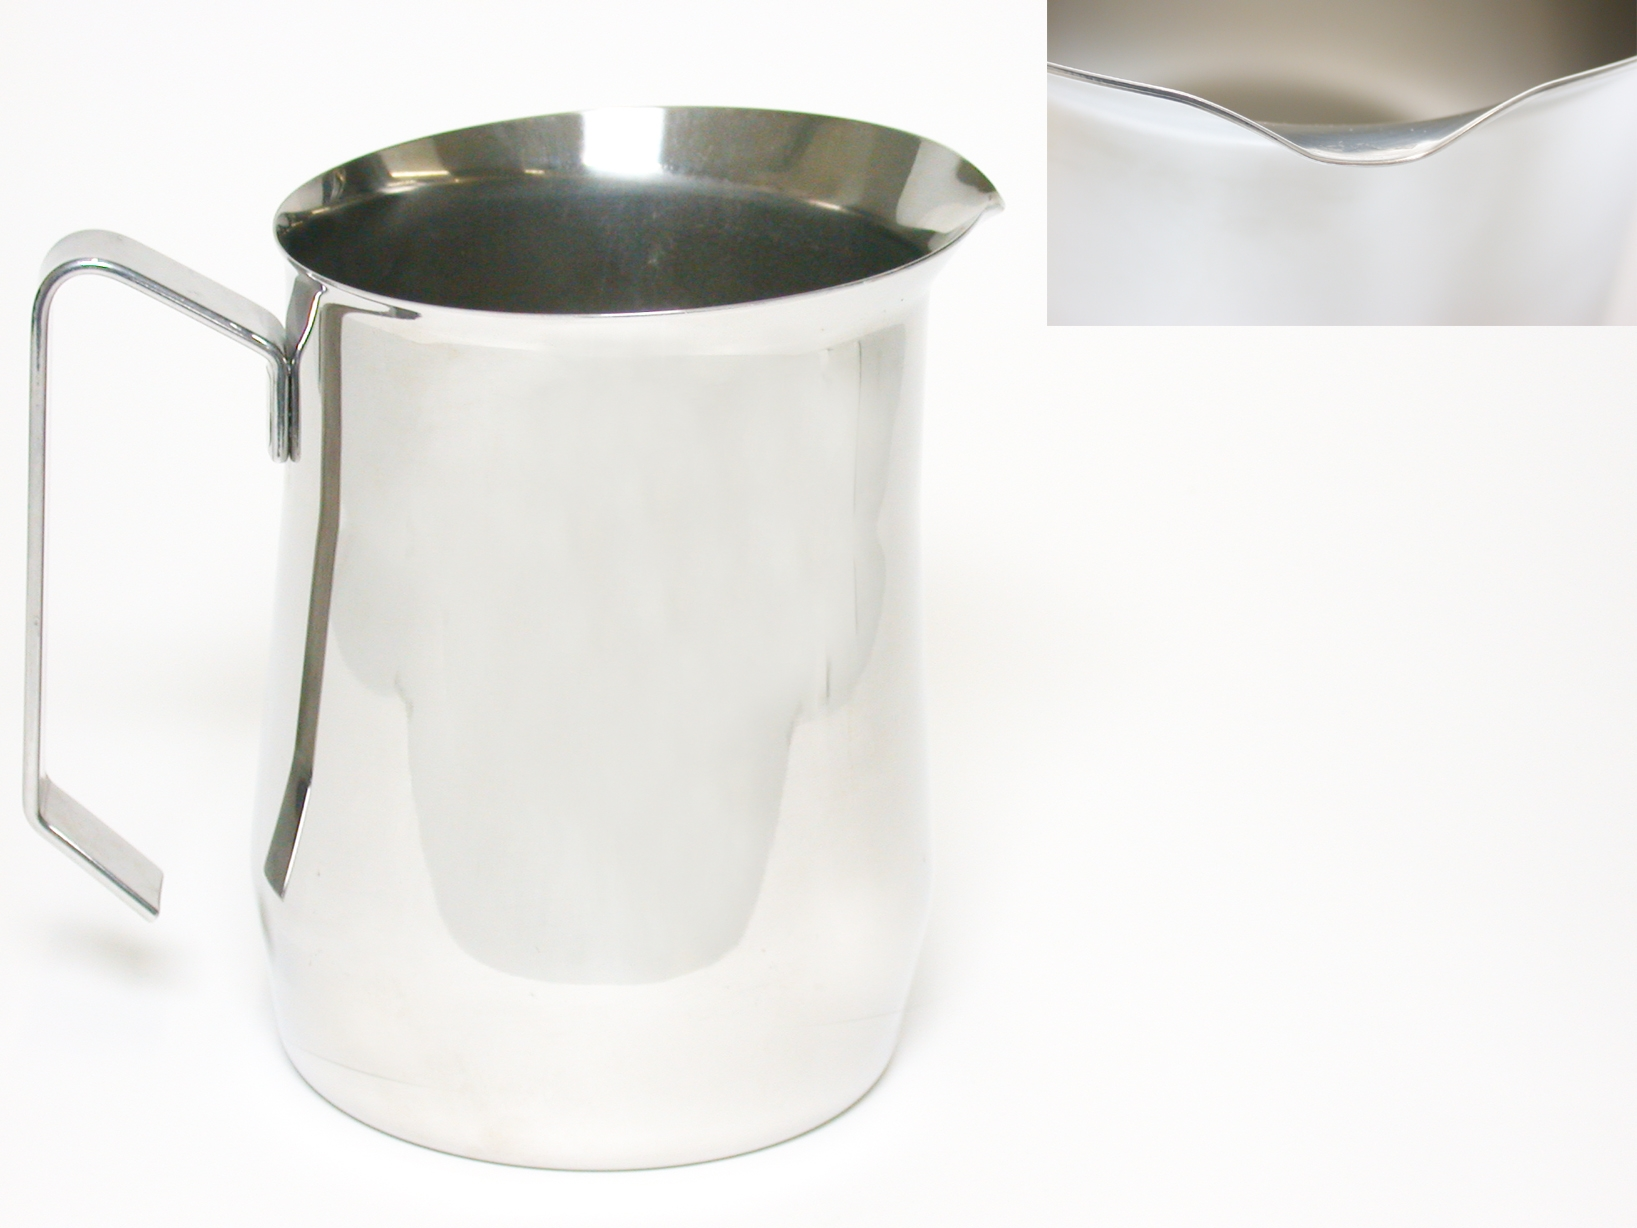 Acquista Lattiera Jolly Inox 18 10 Tazzine 17513974 | Glooke.com